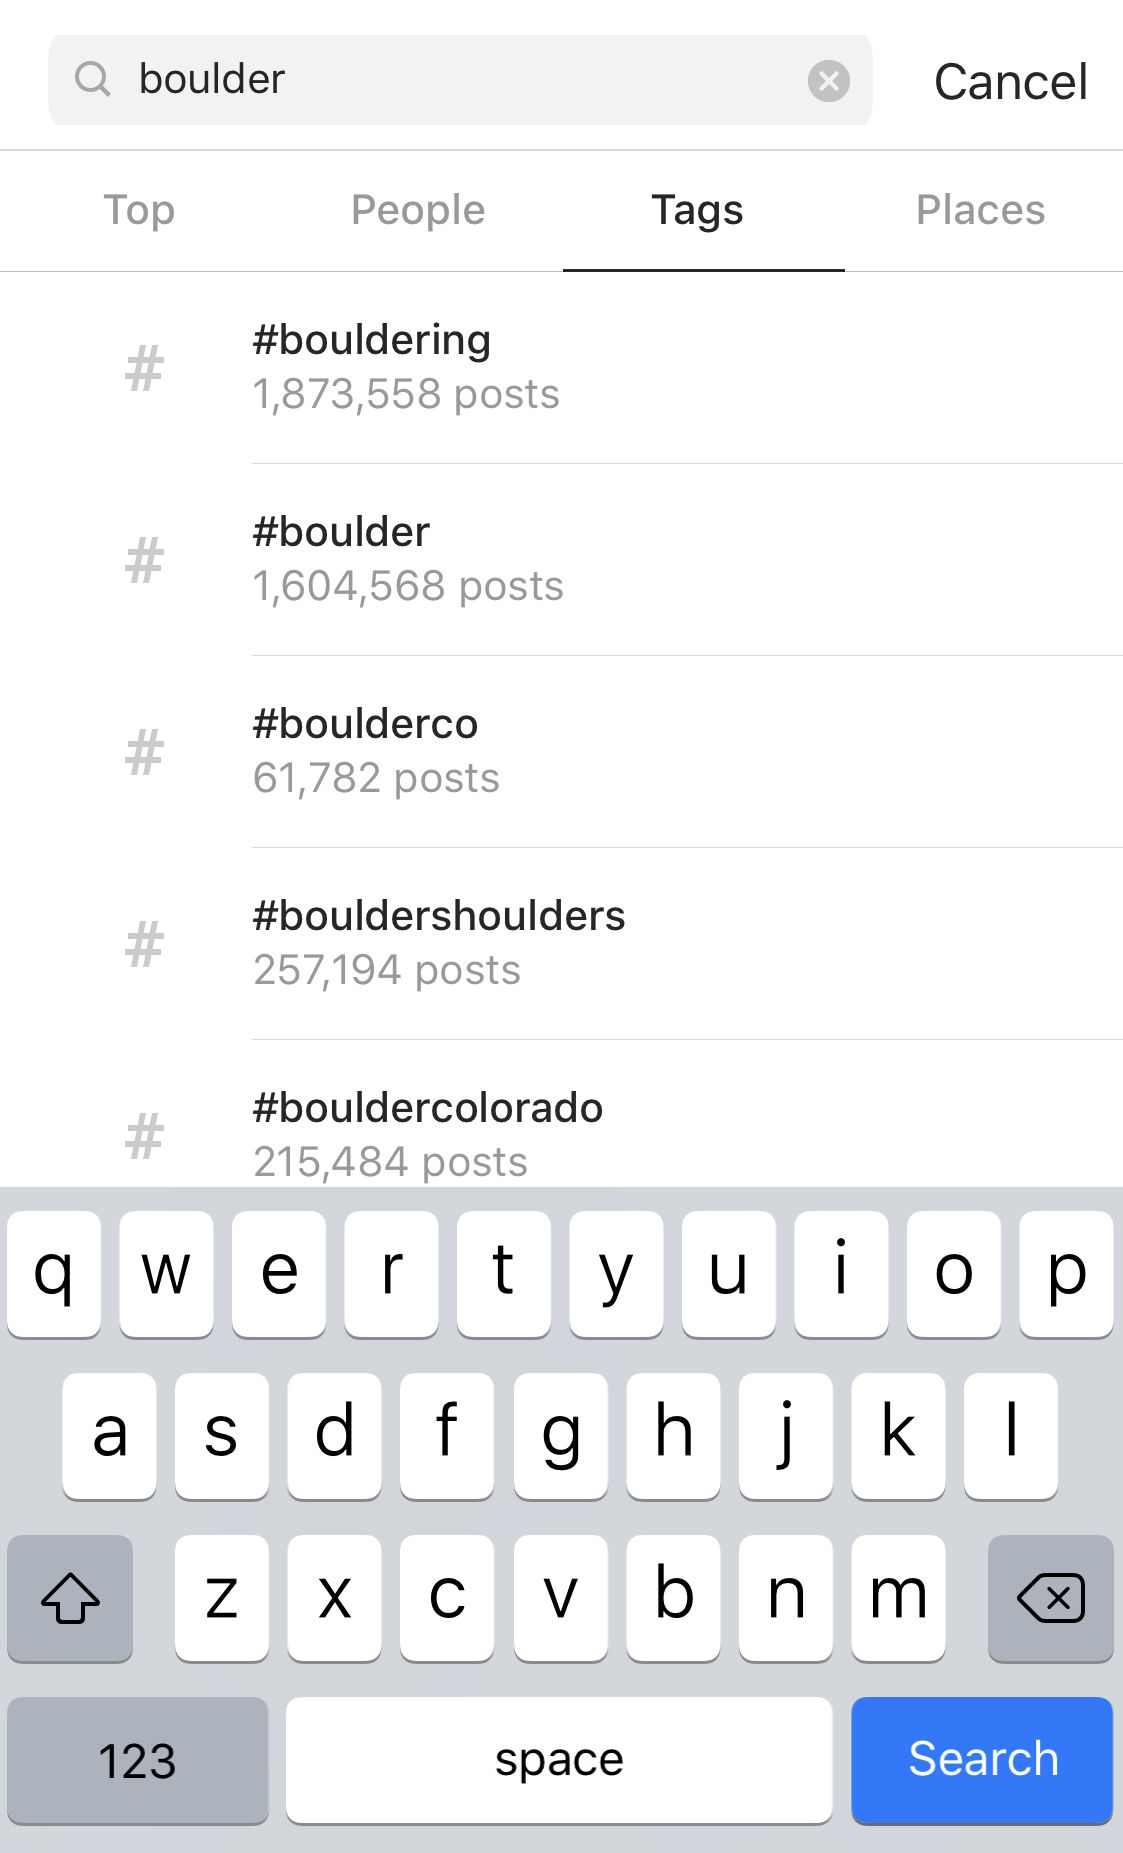 instagram search for #boulder hashtag